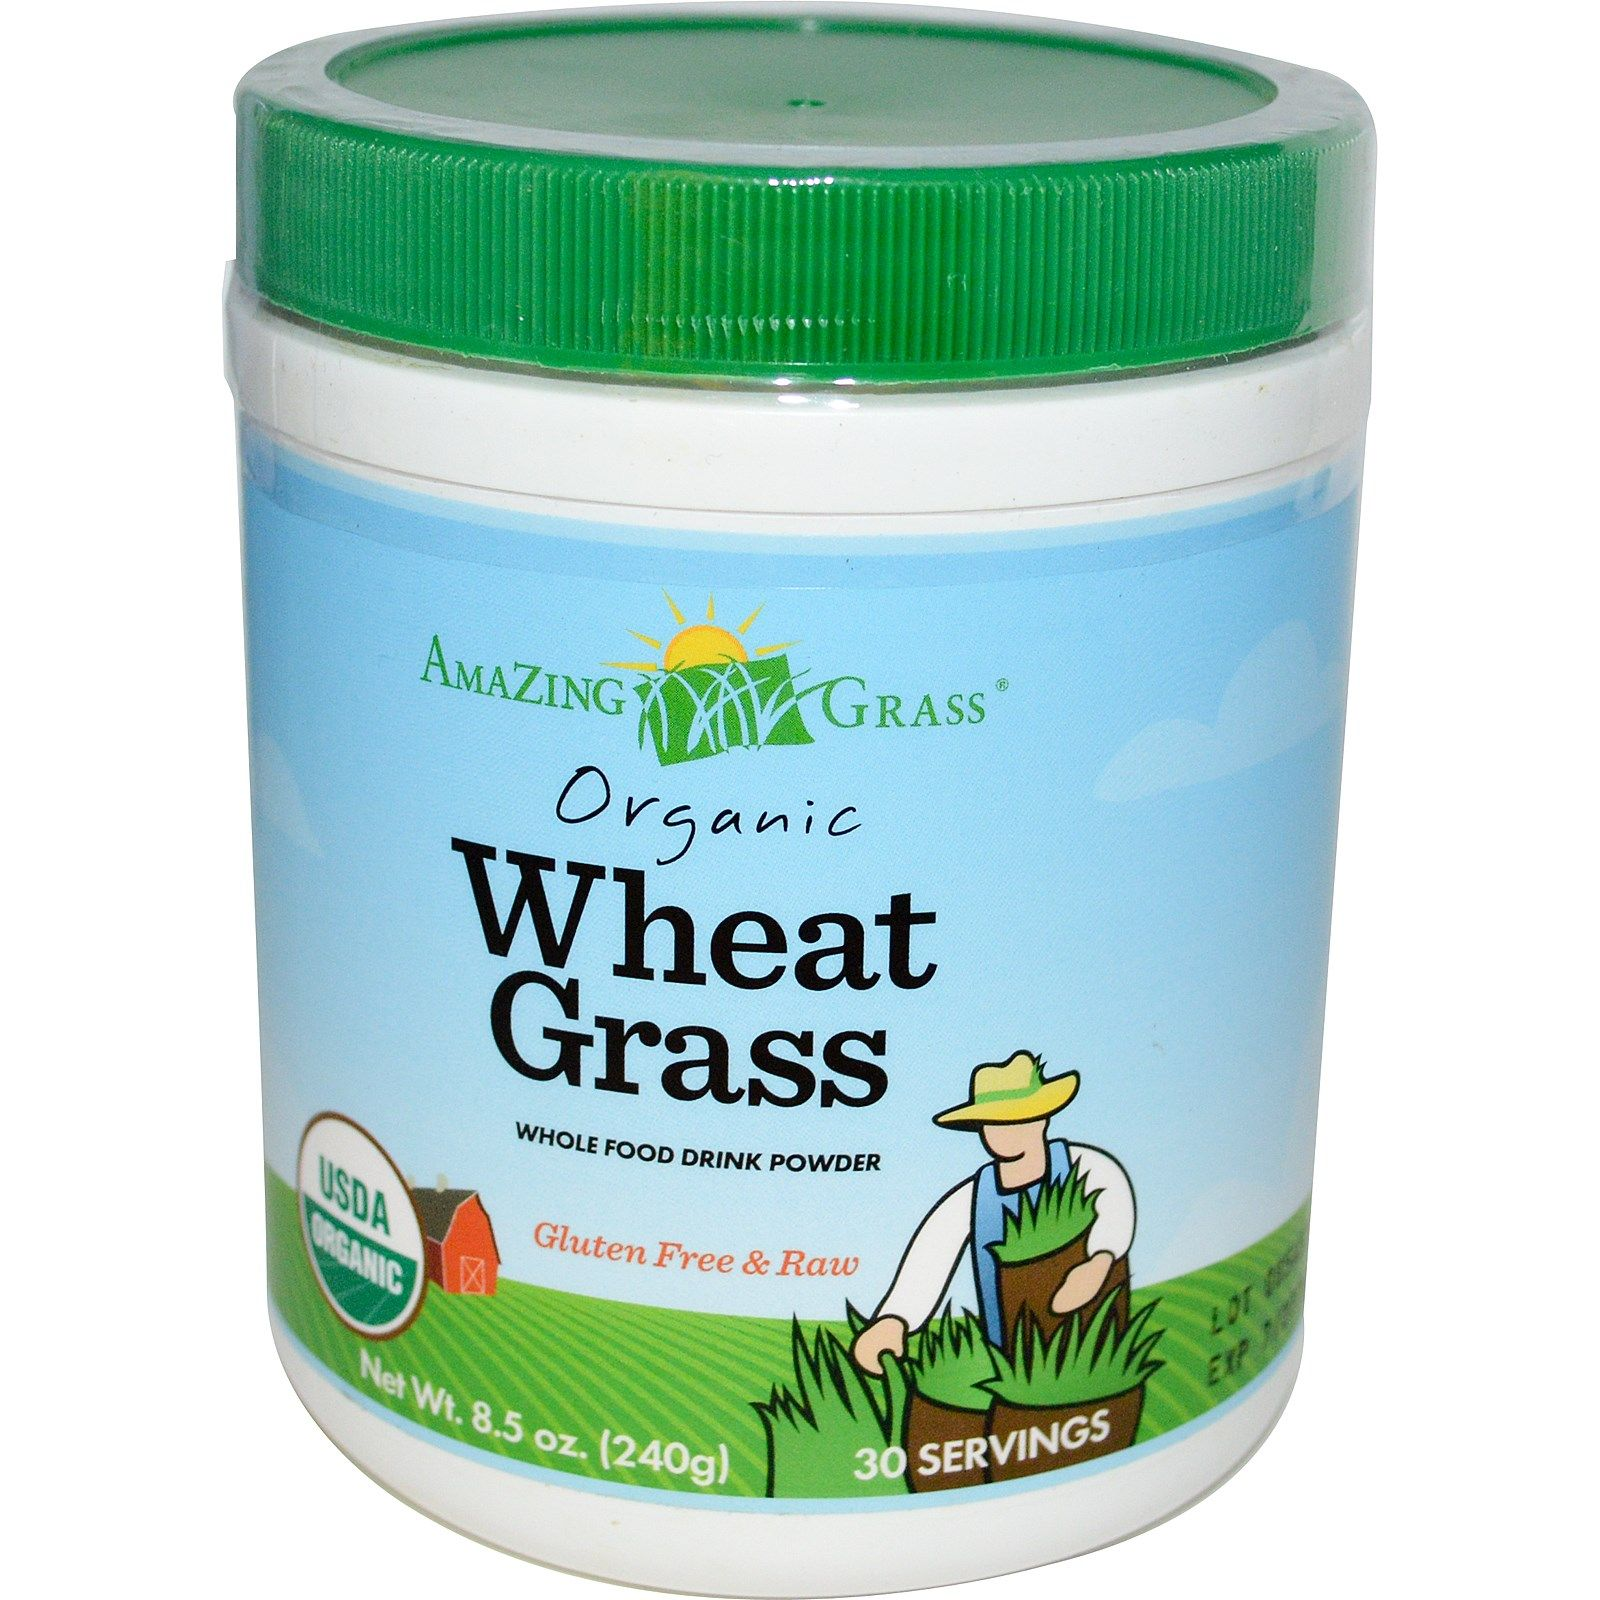 Whole Foods Wheatgrass Powder Home remedies and organic food benefits myherbalmart.com